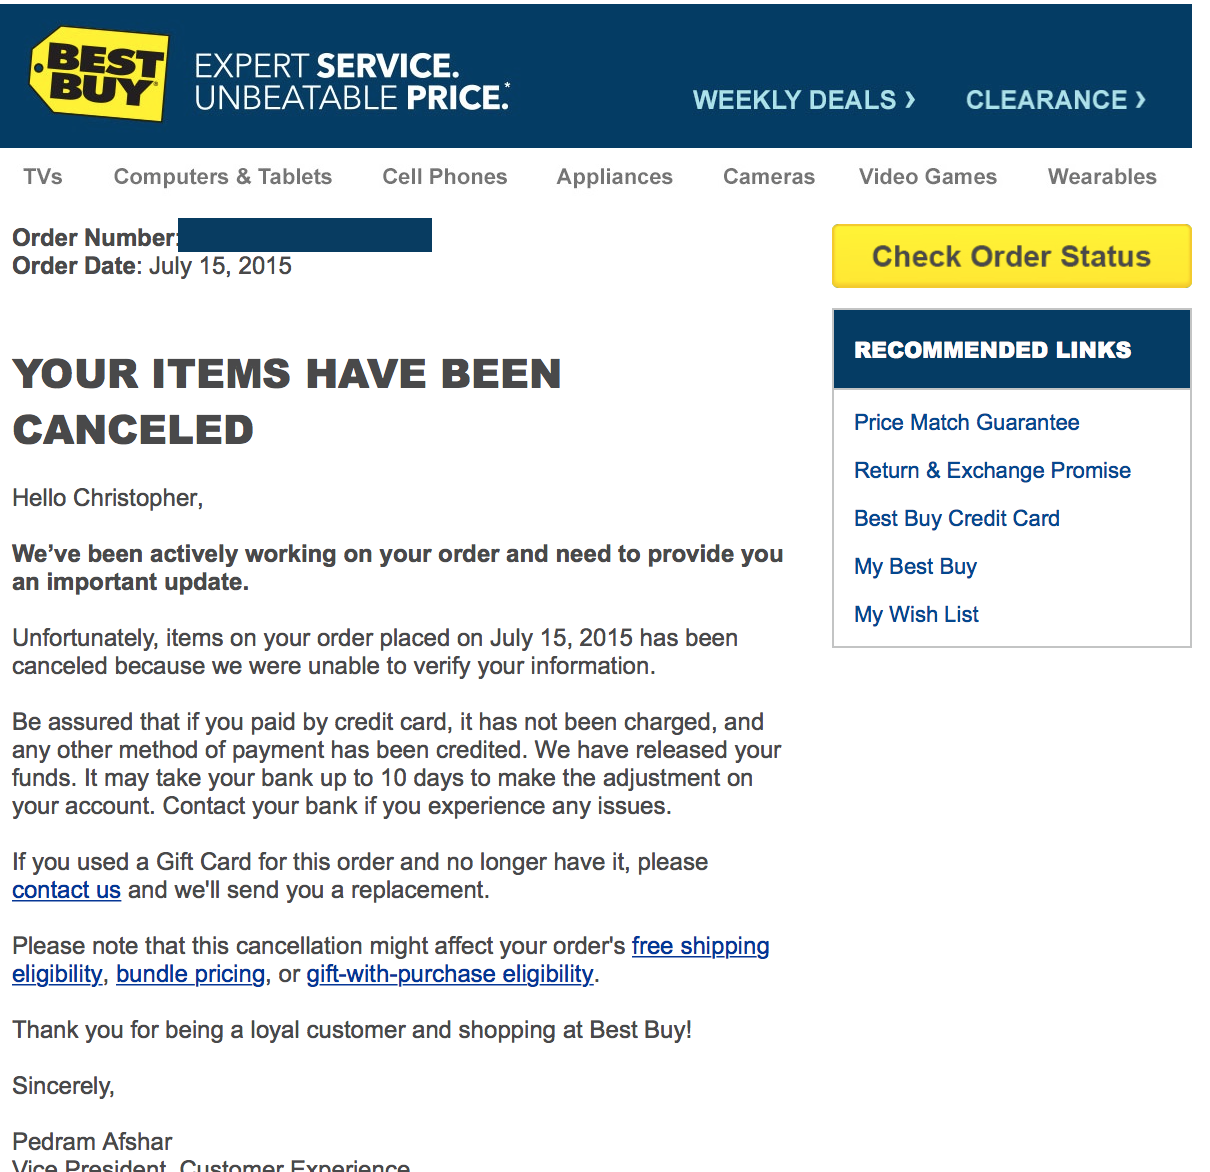 Best Buy Sells $200 Gift Cards For $15, Cancels Orders